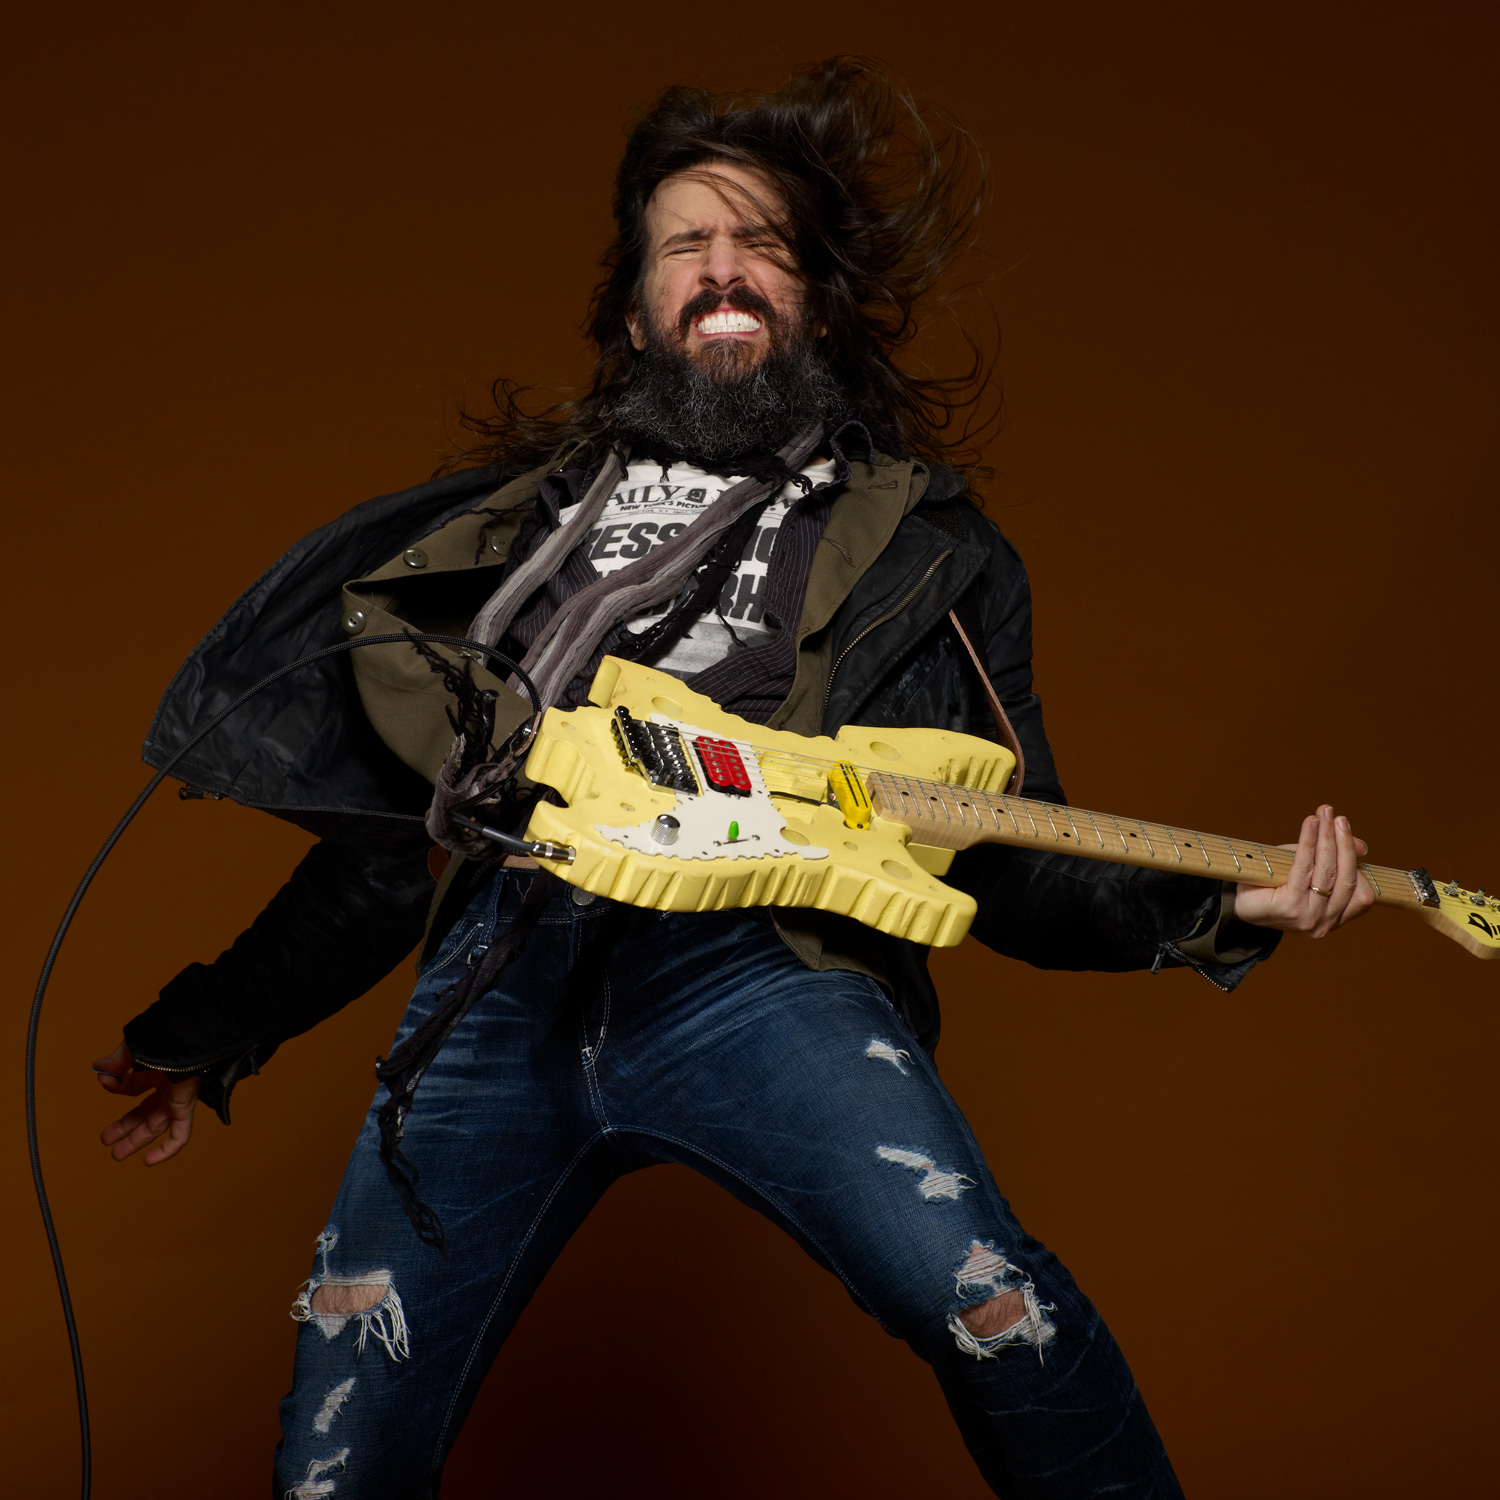 hight resolution of ron thal photo by larry dimarzio